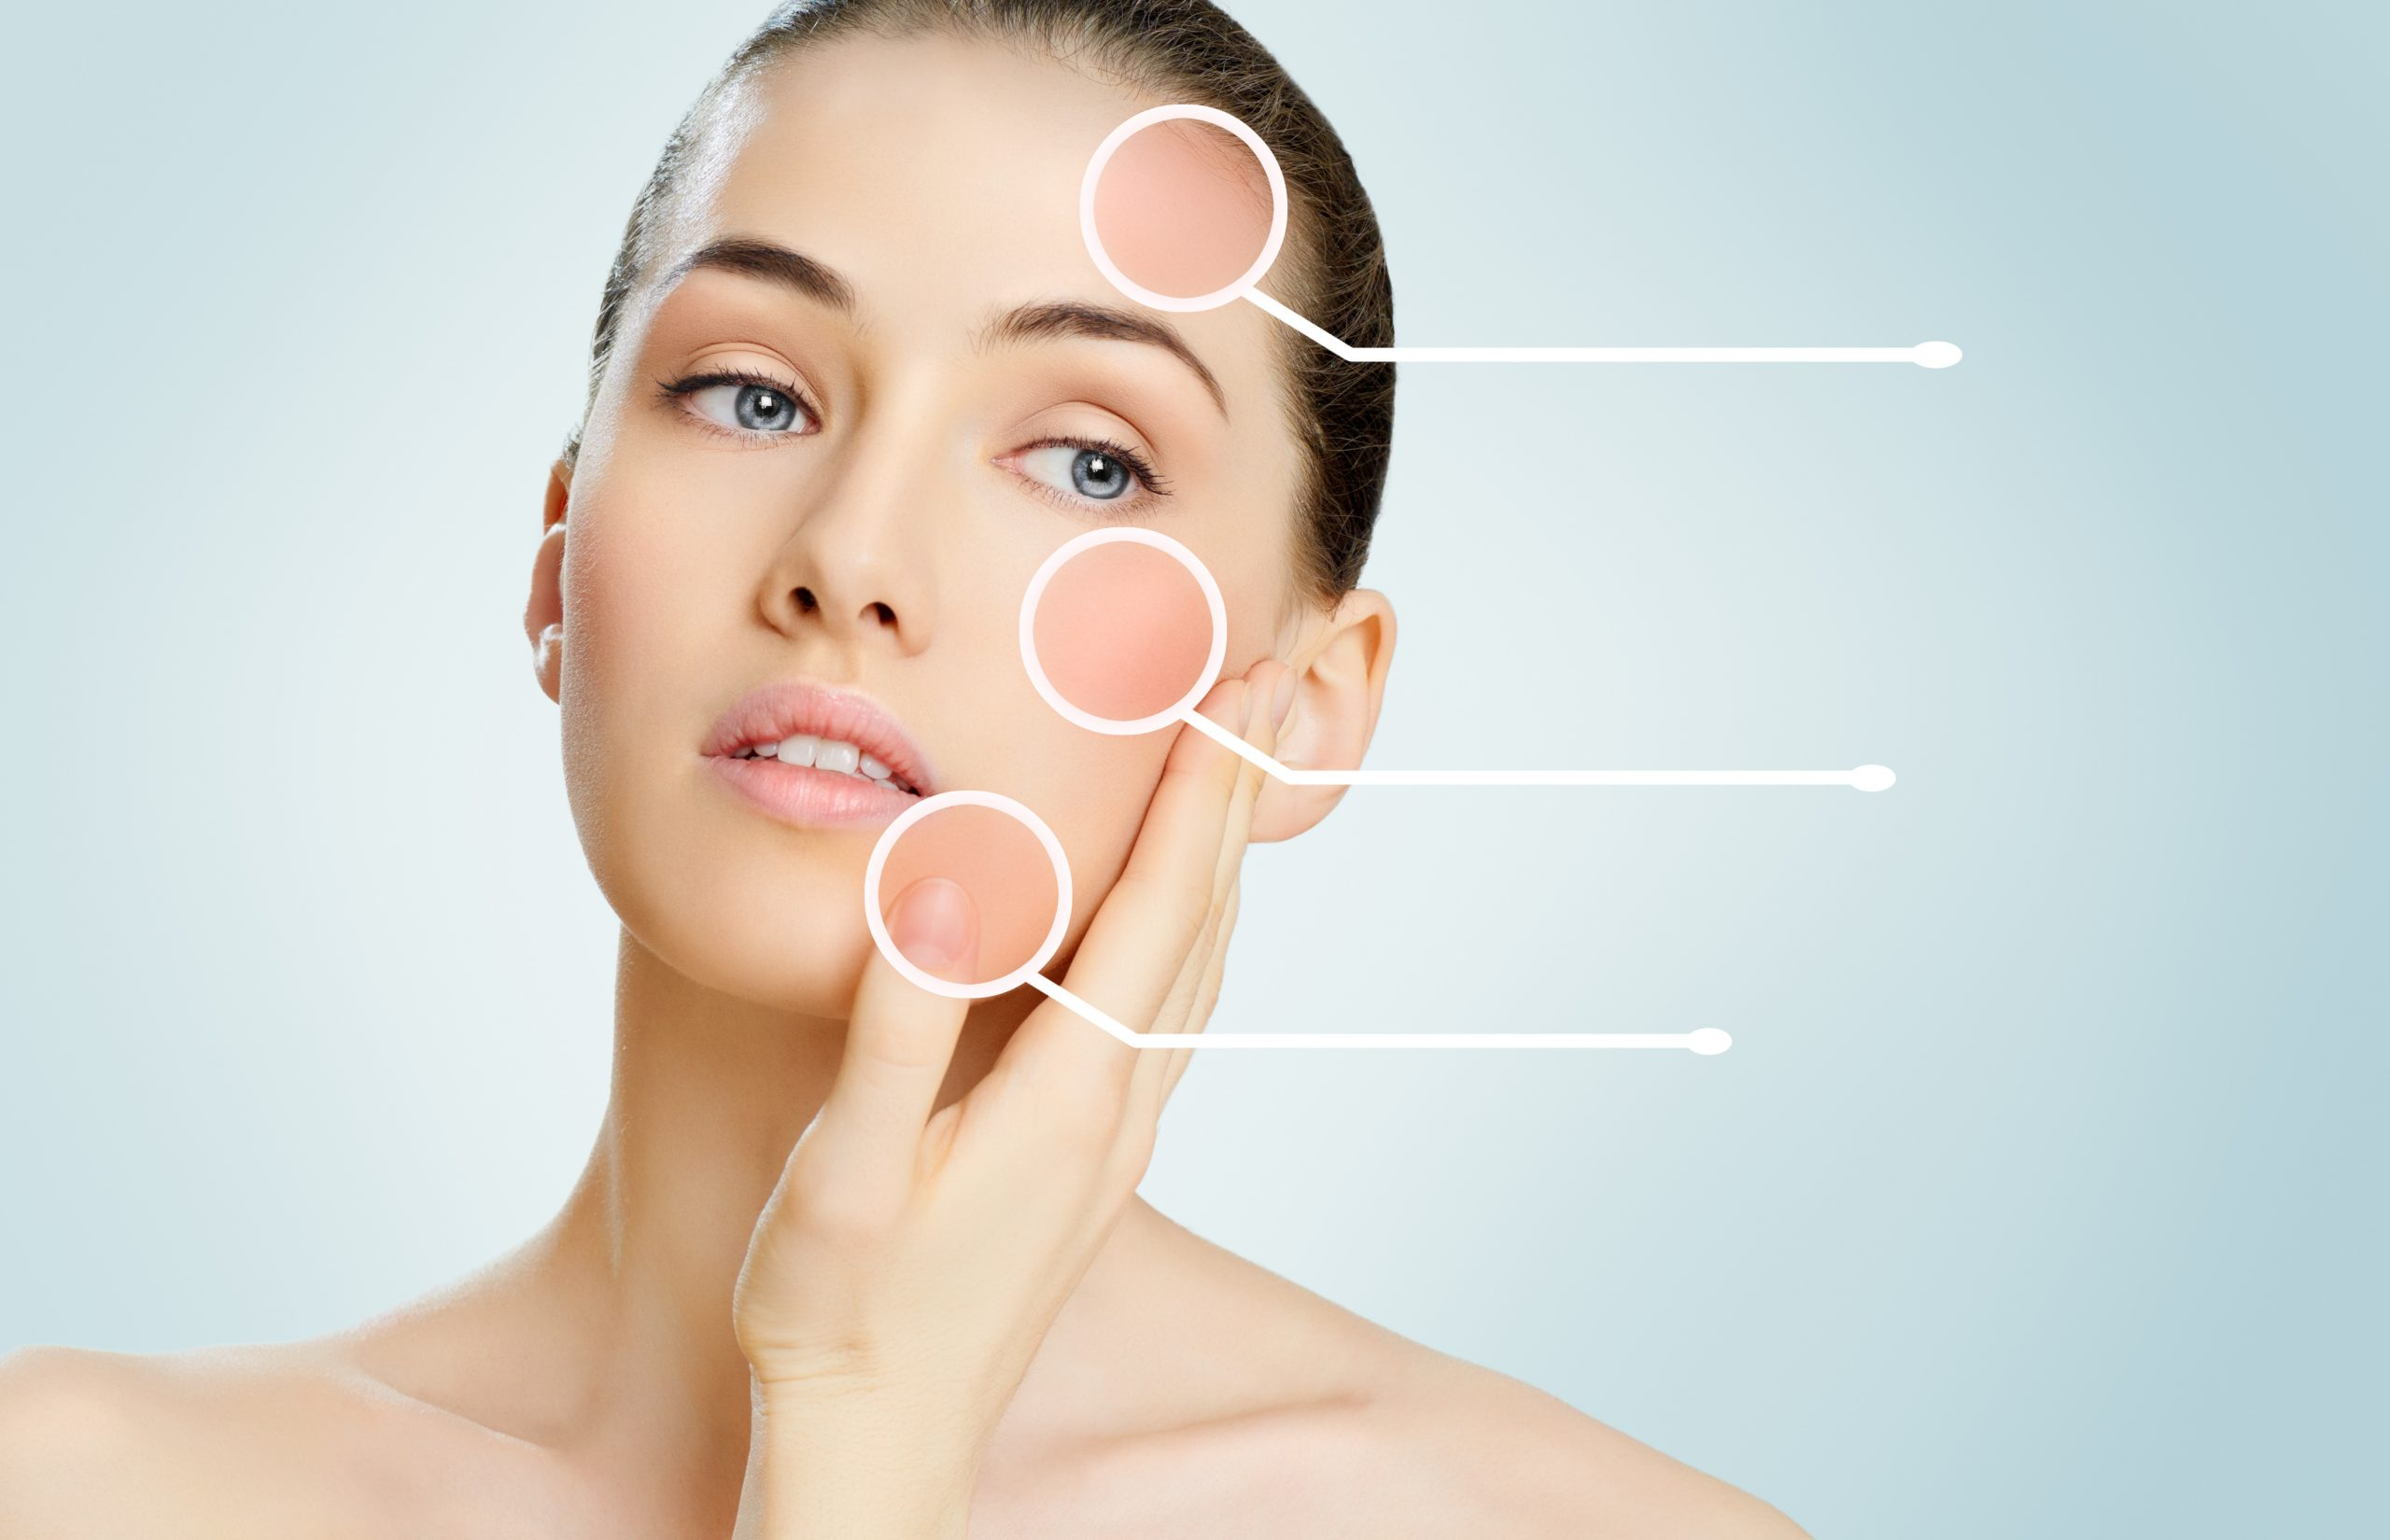 Best Facial Treatments For Oily Skin – Check them